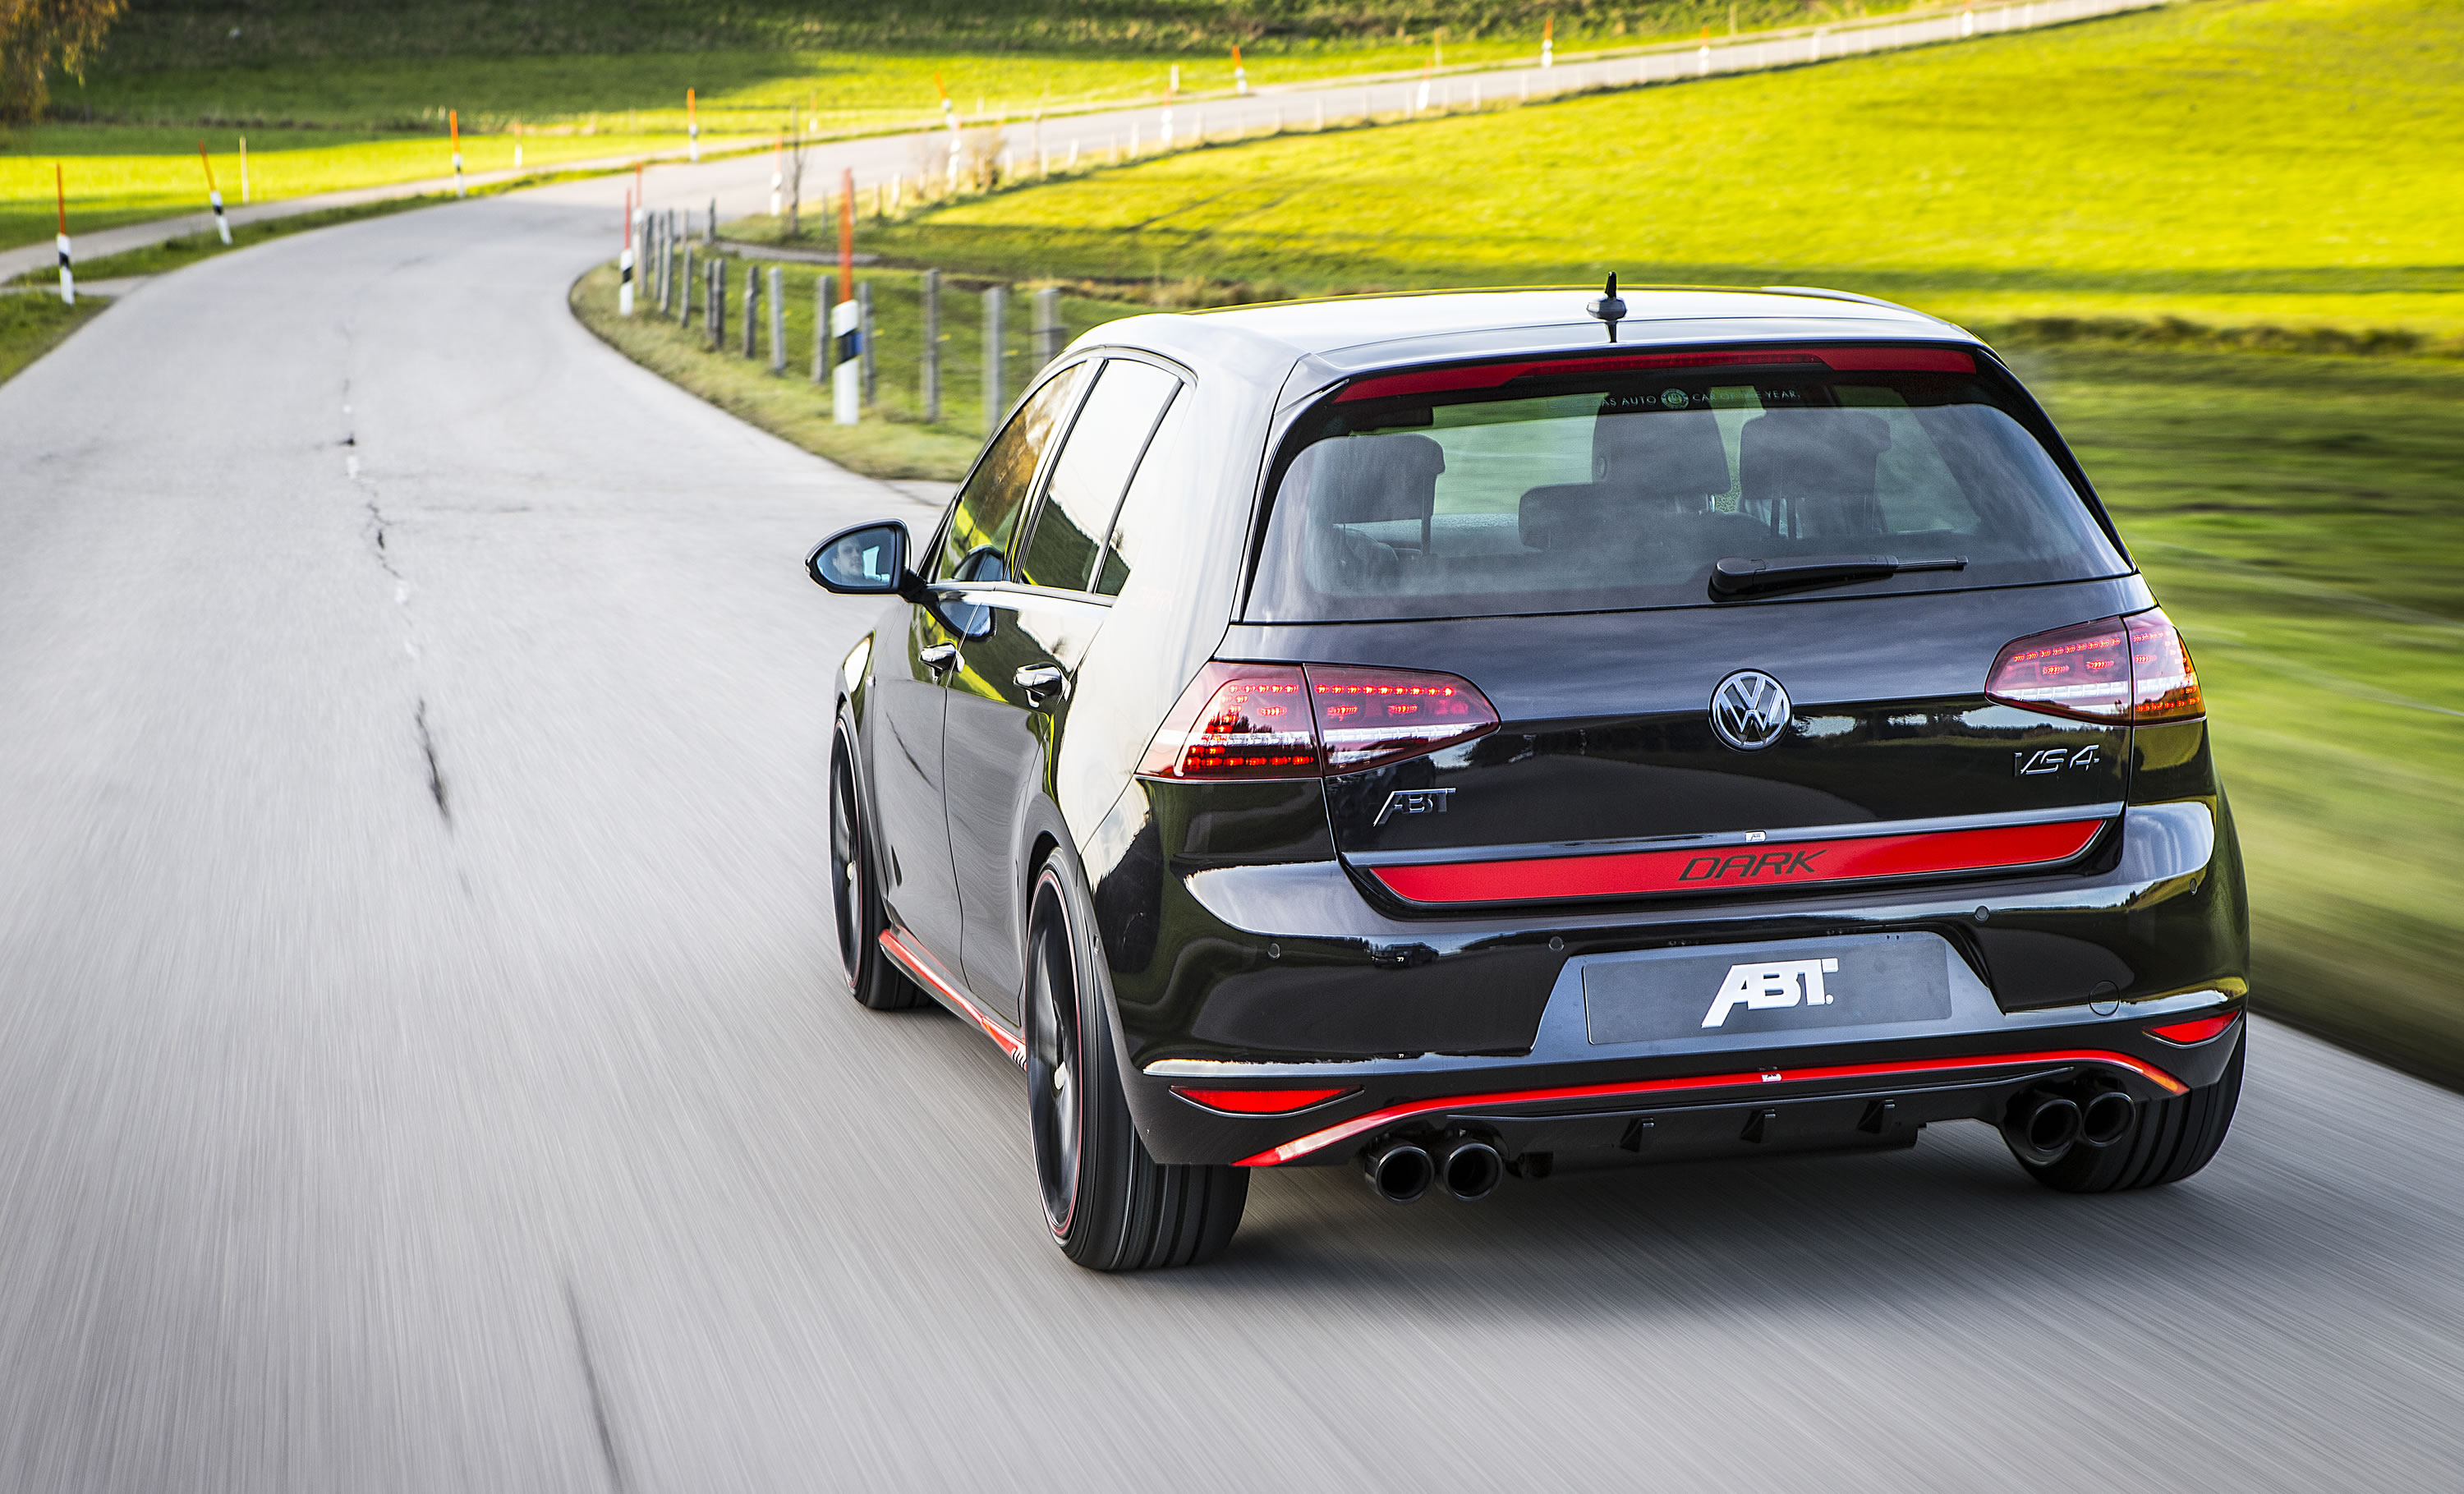 2014 volkswagen golf gti dark edition by abt photos specs and review rs. Black Bedroom Furniture Sets. Home Design Ideas